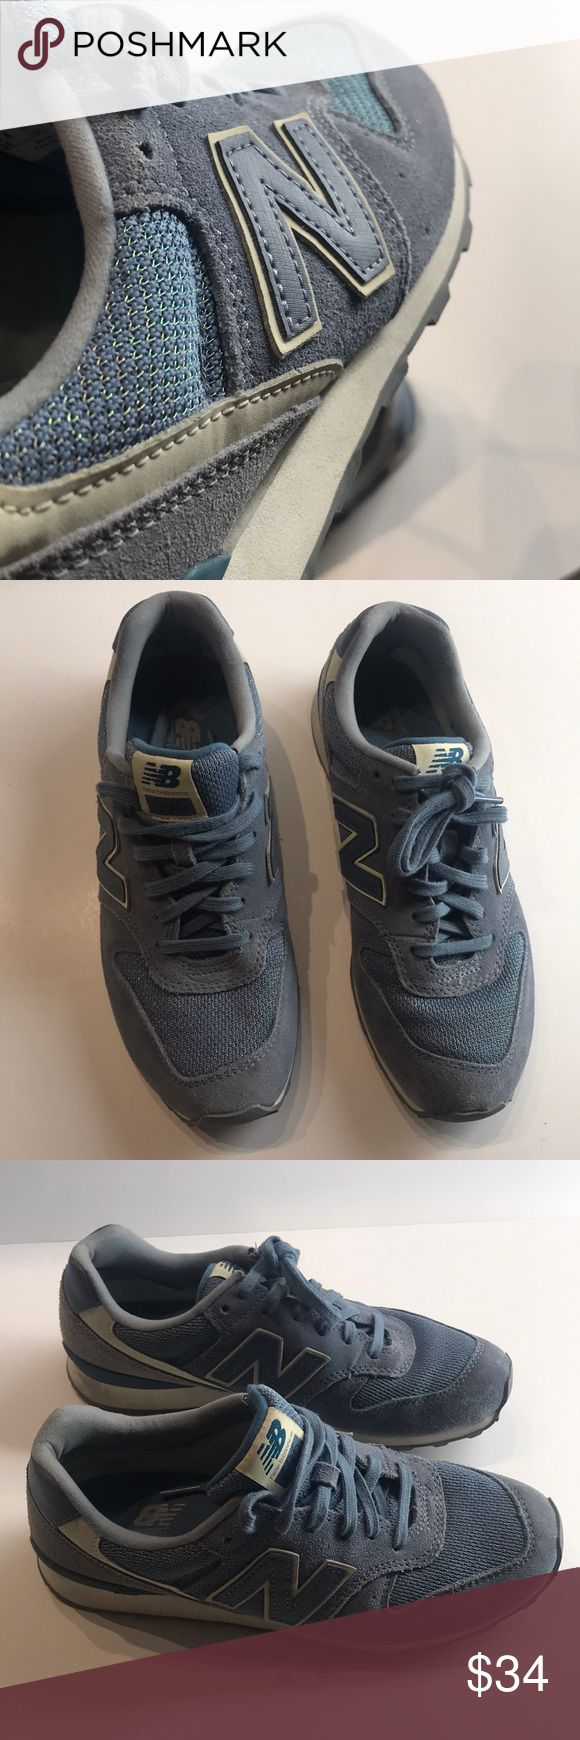 Like new New Balance retro 696 running shoes It's 1985 and you are out the door in your new 696 running shoes... seriously a total throwback look !!! Great every day shoes with ample cushioning for the daily grind if you drive , deliver, or stand a lot . Lightweight but not cheap light like ... and the list goes on and on.... New Balance Shoes Sneakers